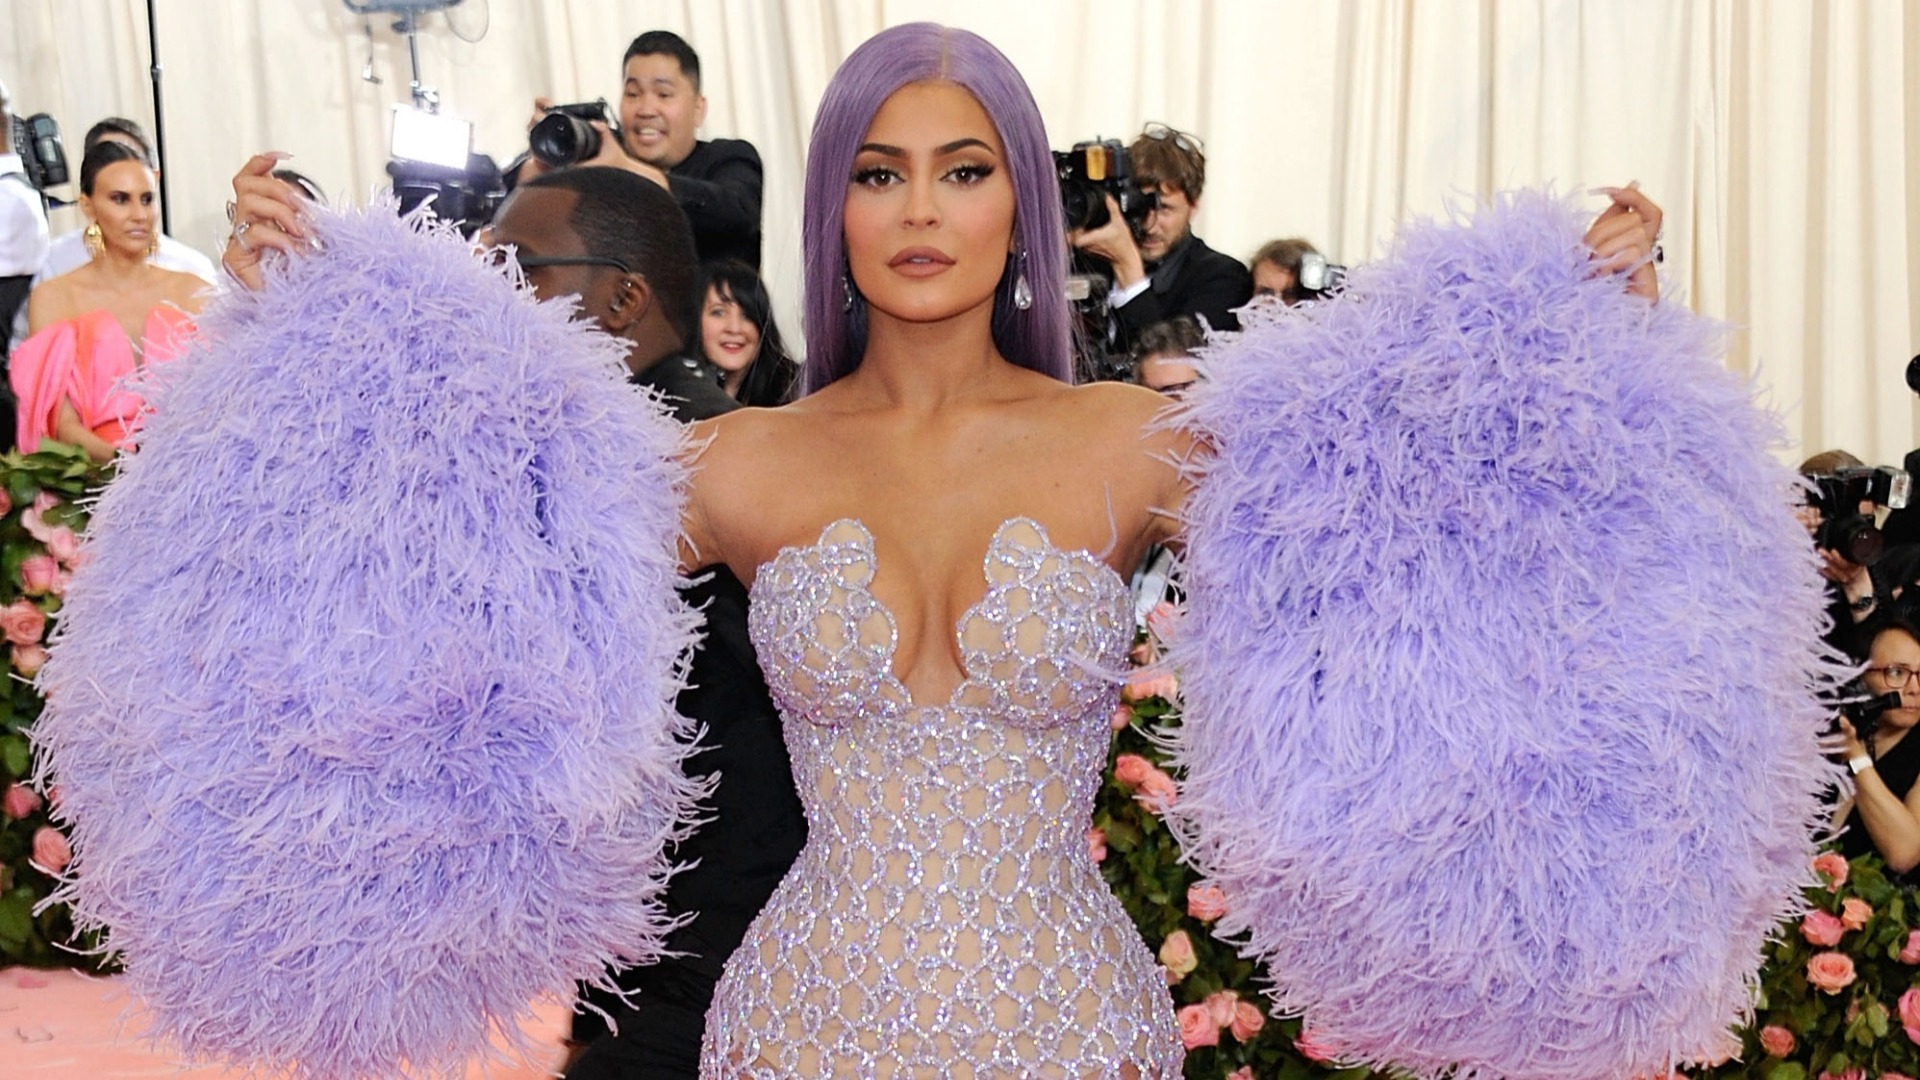 Kylie Jenner Reportedly Takes Legal Action Against Company for 'Stormi Couture' Trademark